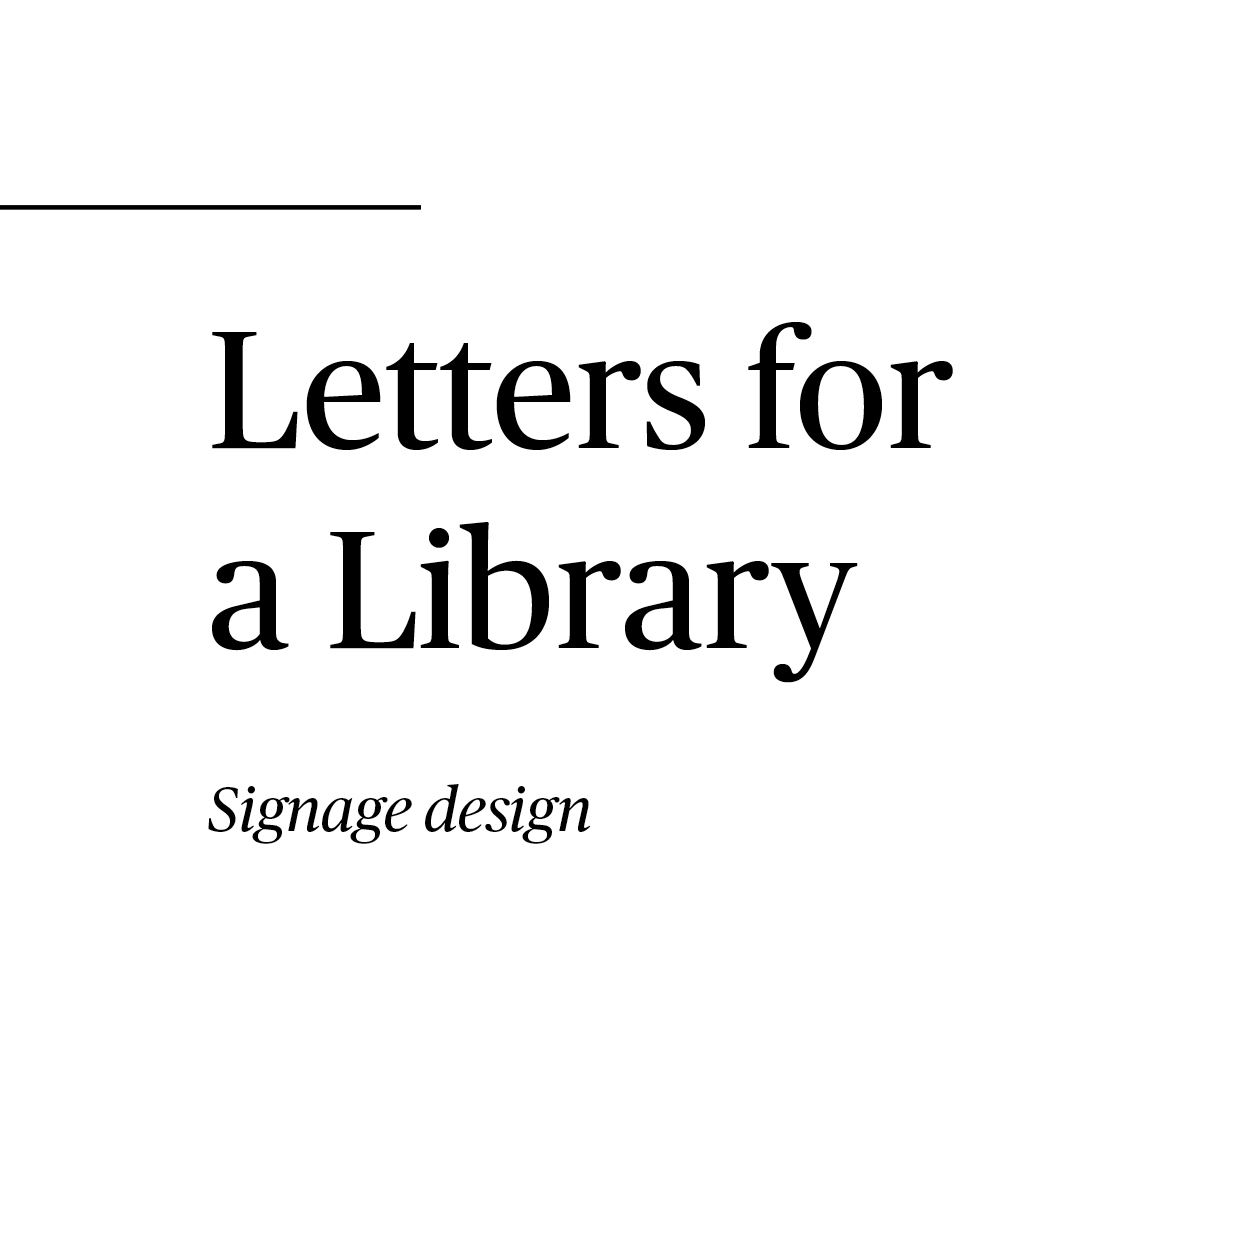 Letters for a Library